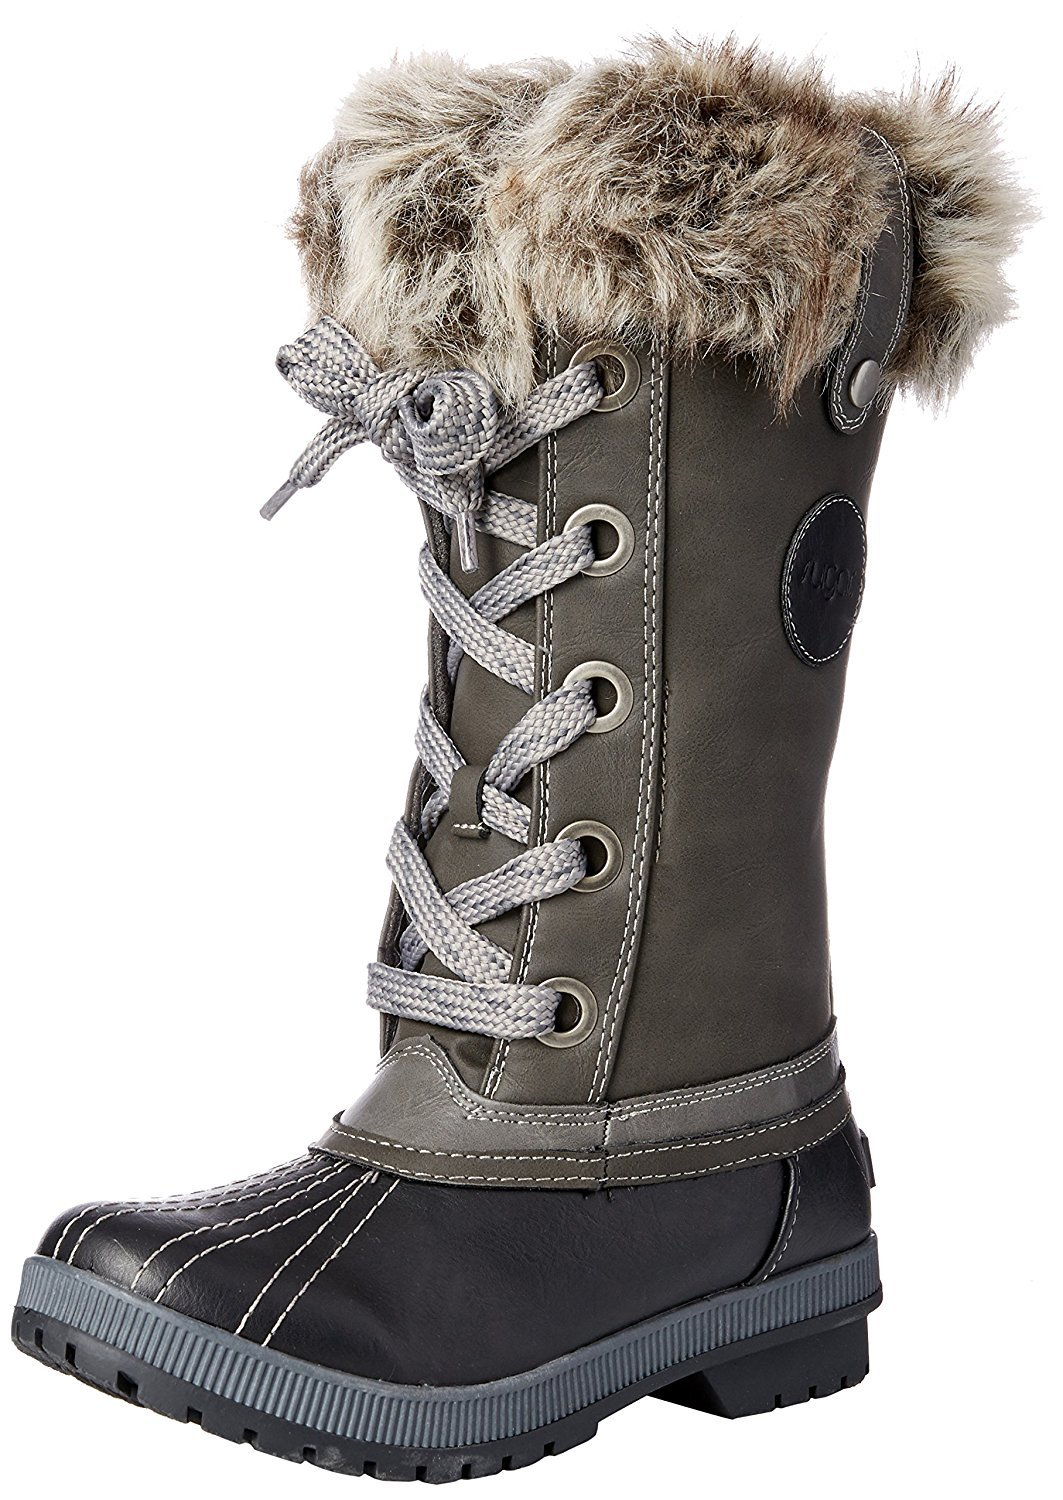 Sugar Women's SGR-Marlon Snow Boot, Black/Grey, 9 Medium US